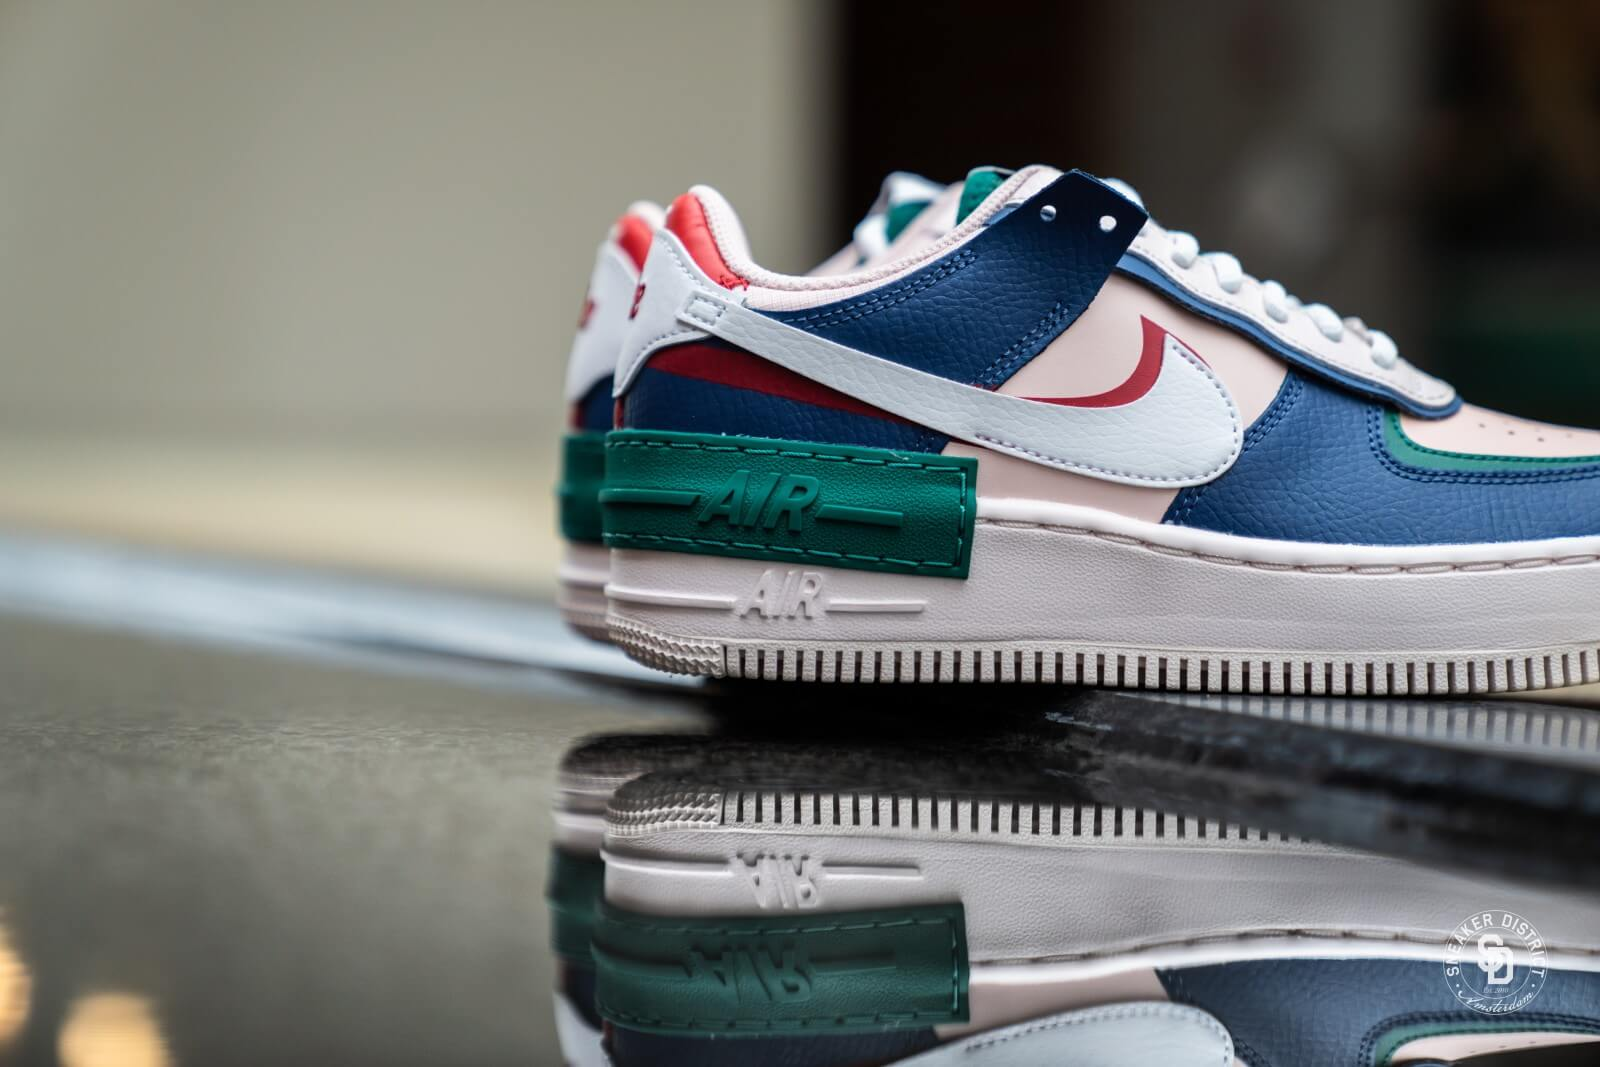 Nike Women S Air Force 1 Shadow Mystic Navy White Echo Pink Ci0919 400 4.3 out of 5 stars 11 ratings. nike women s air force 1 shadow mystic navy white echo pink